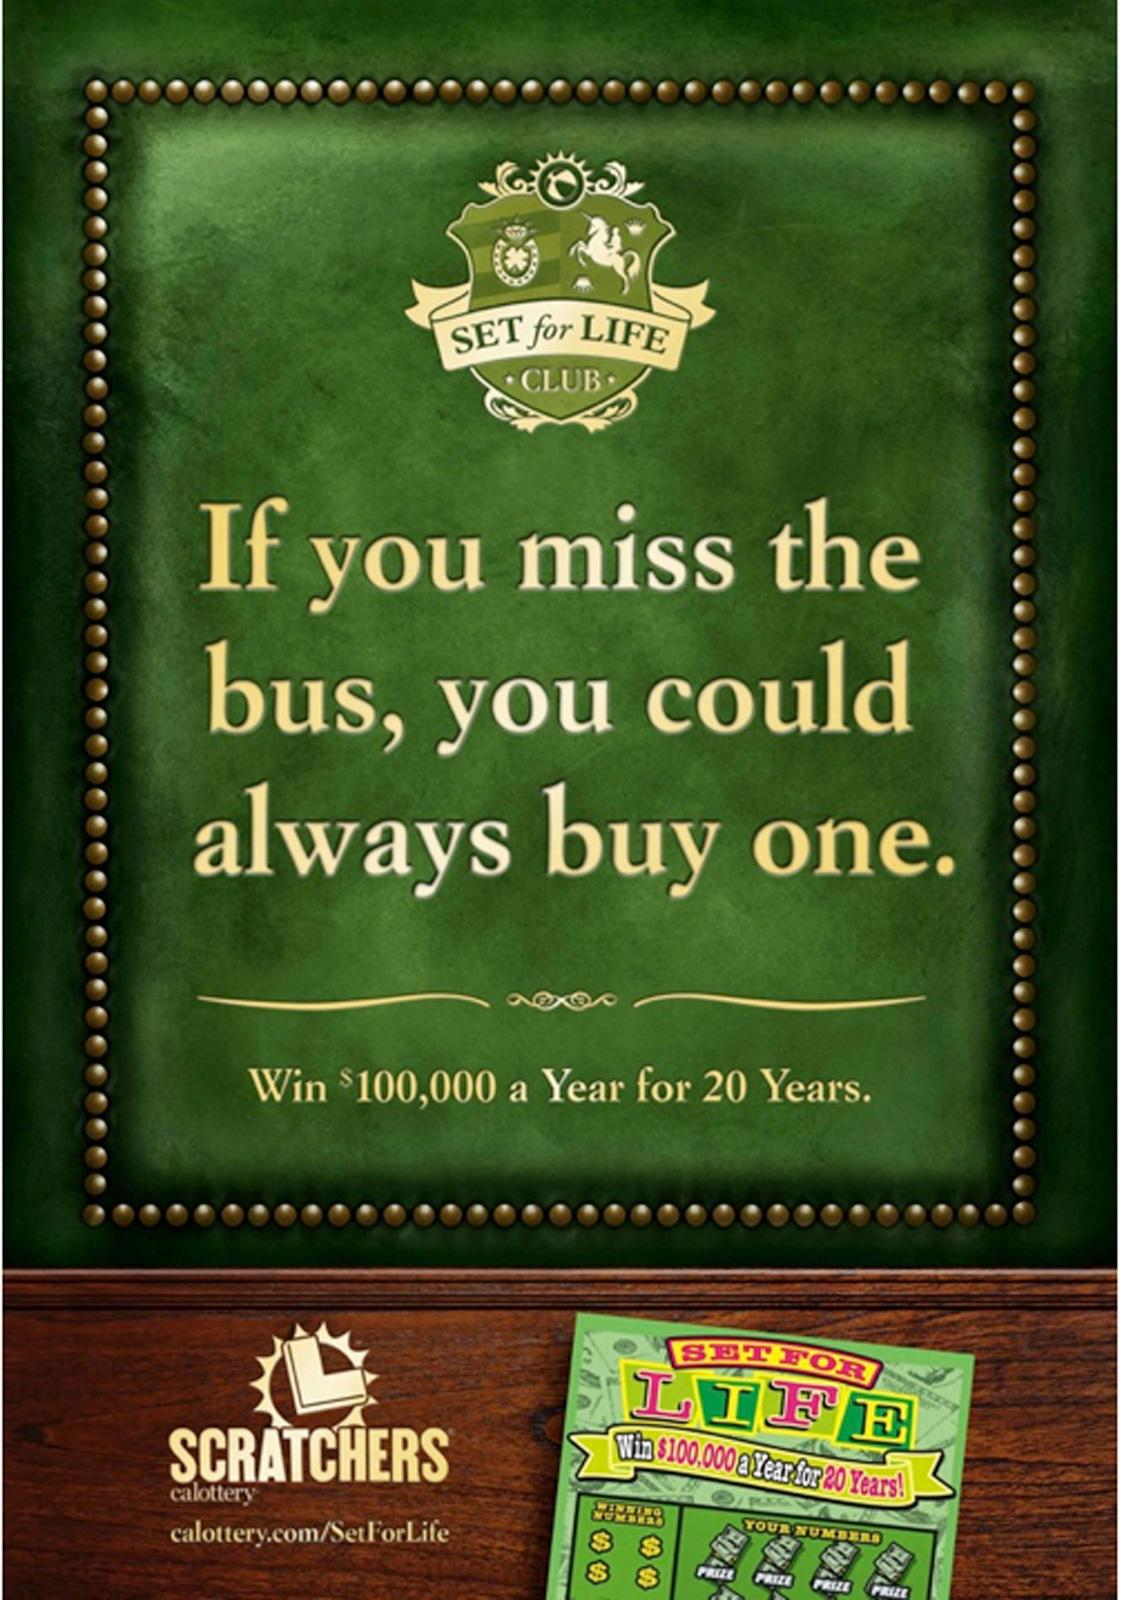 The California Lottery Outdoor Ad -  If you miss the bus